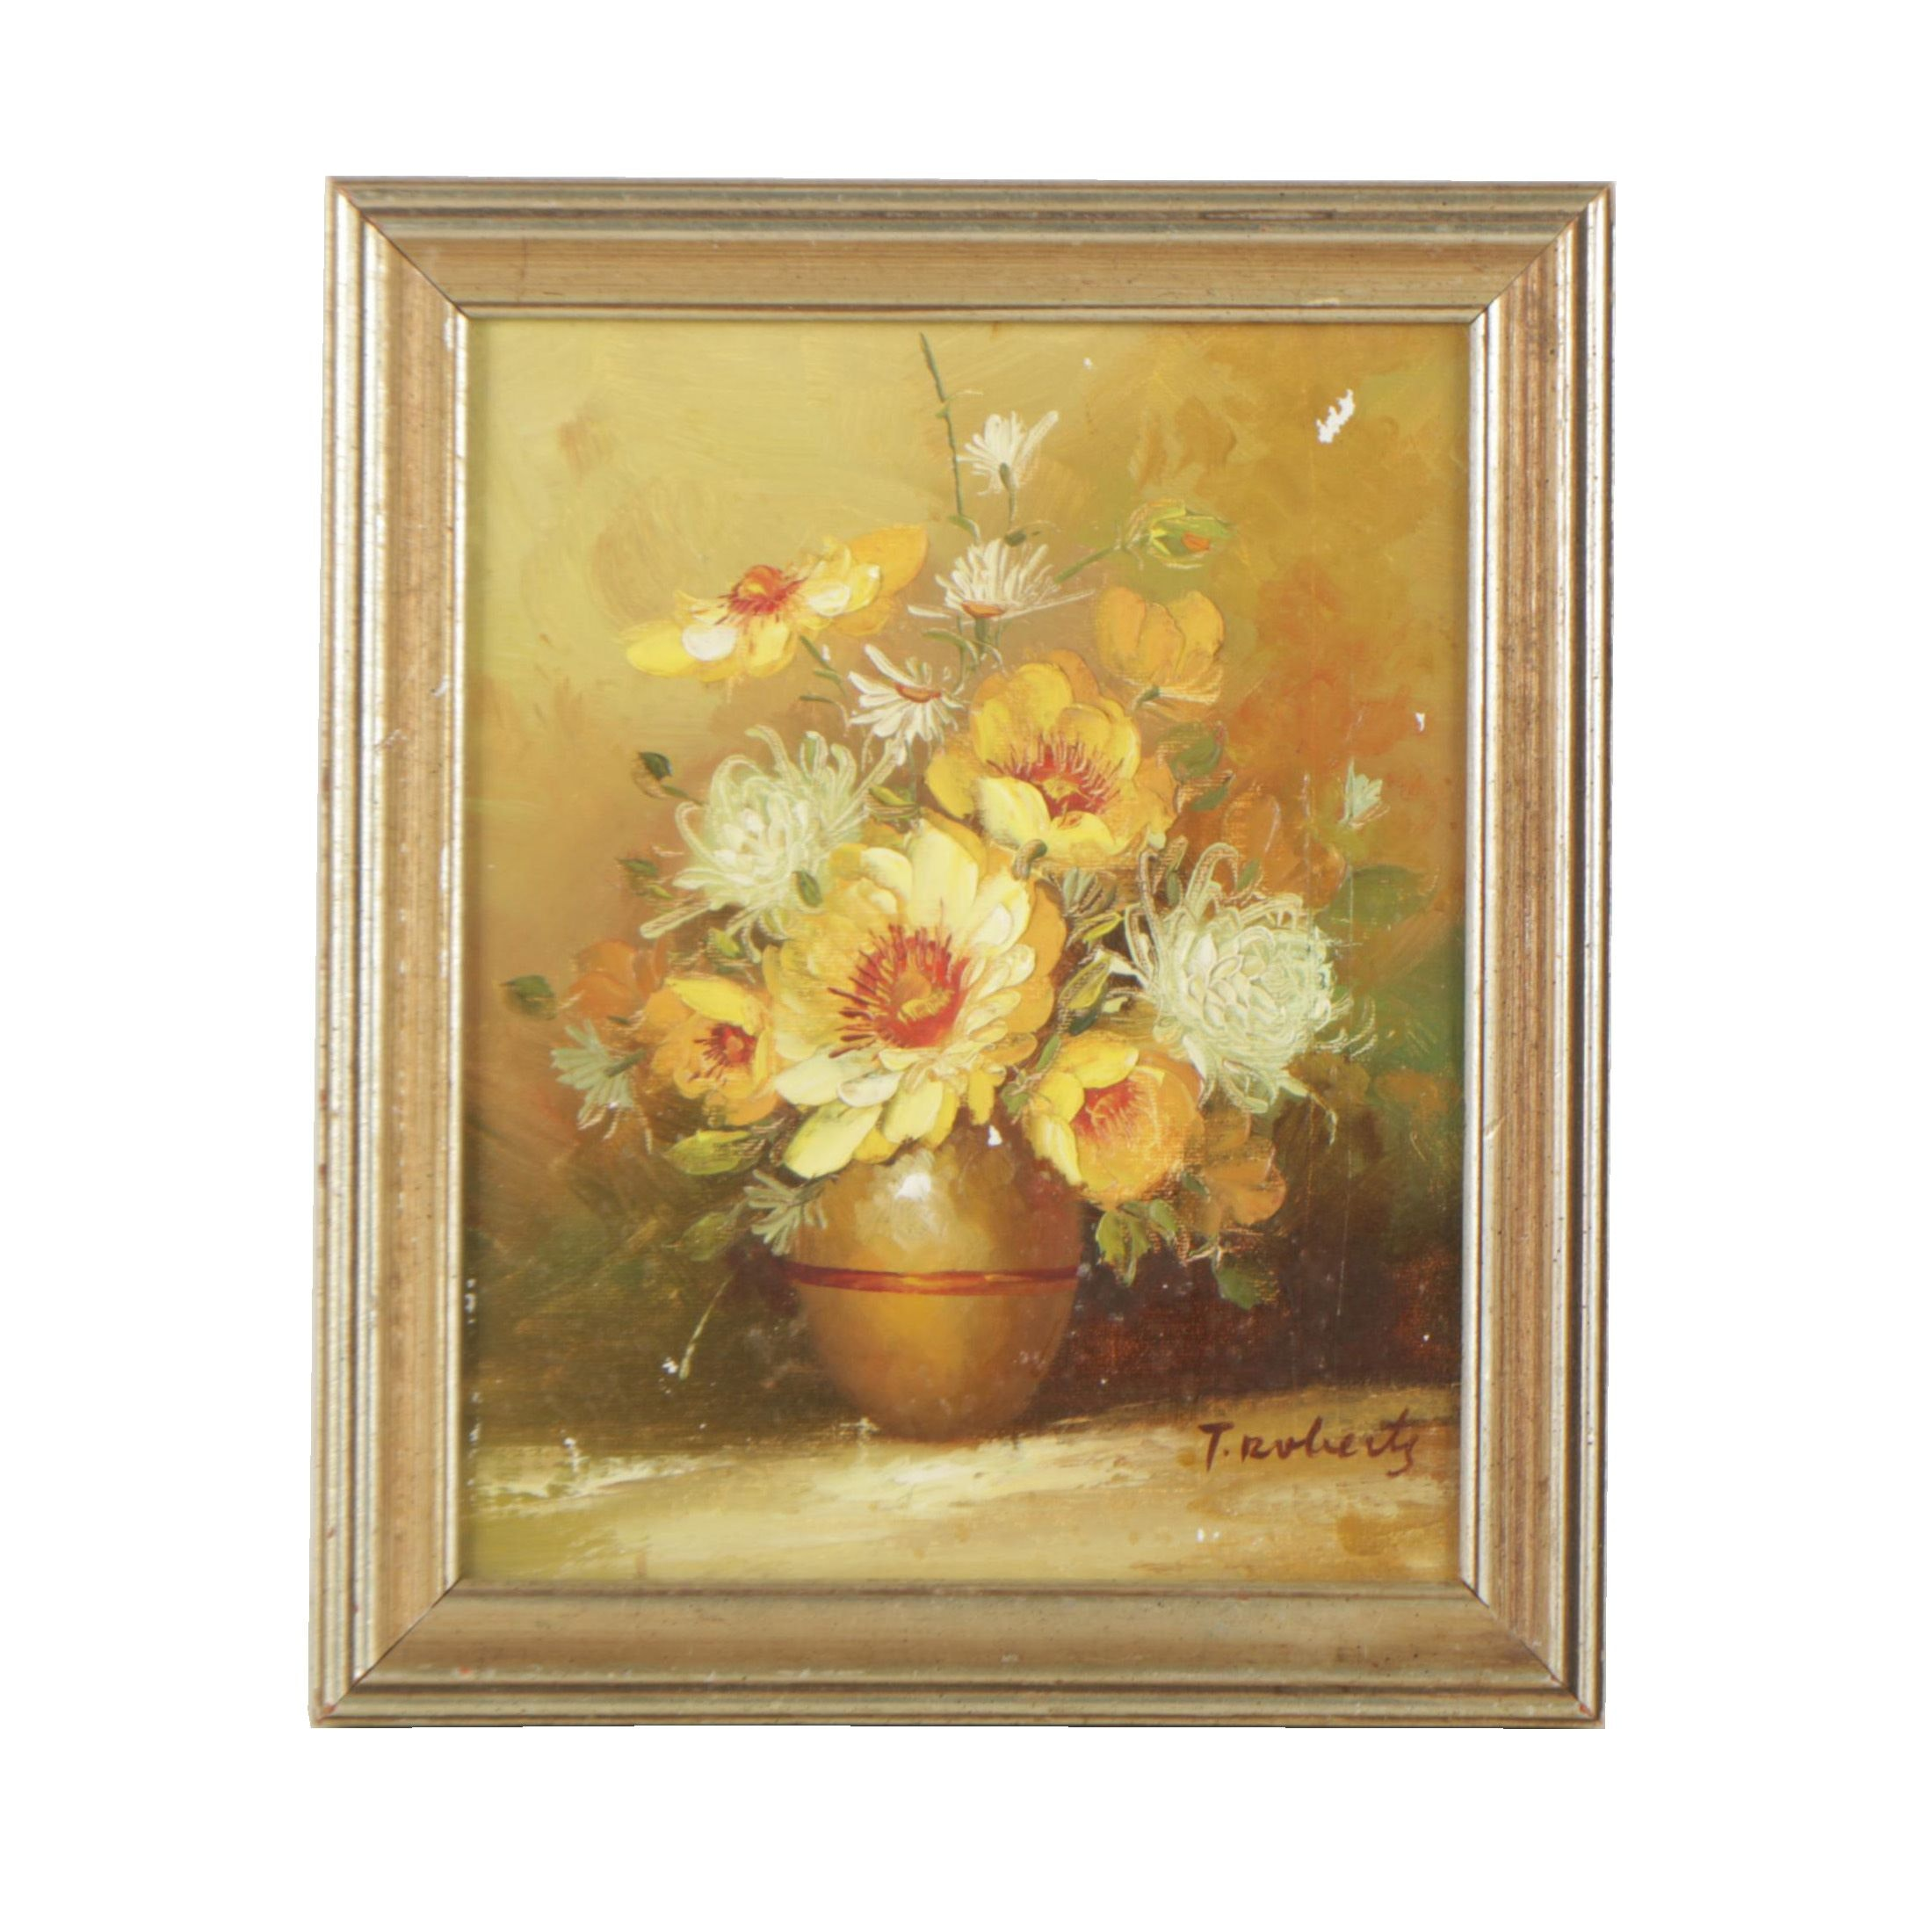 T. Roberts Floral Still Life Oil Painting